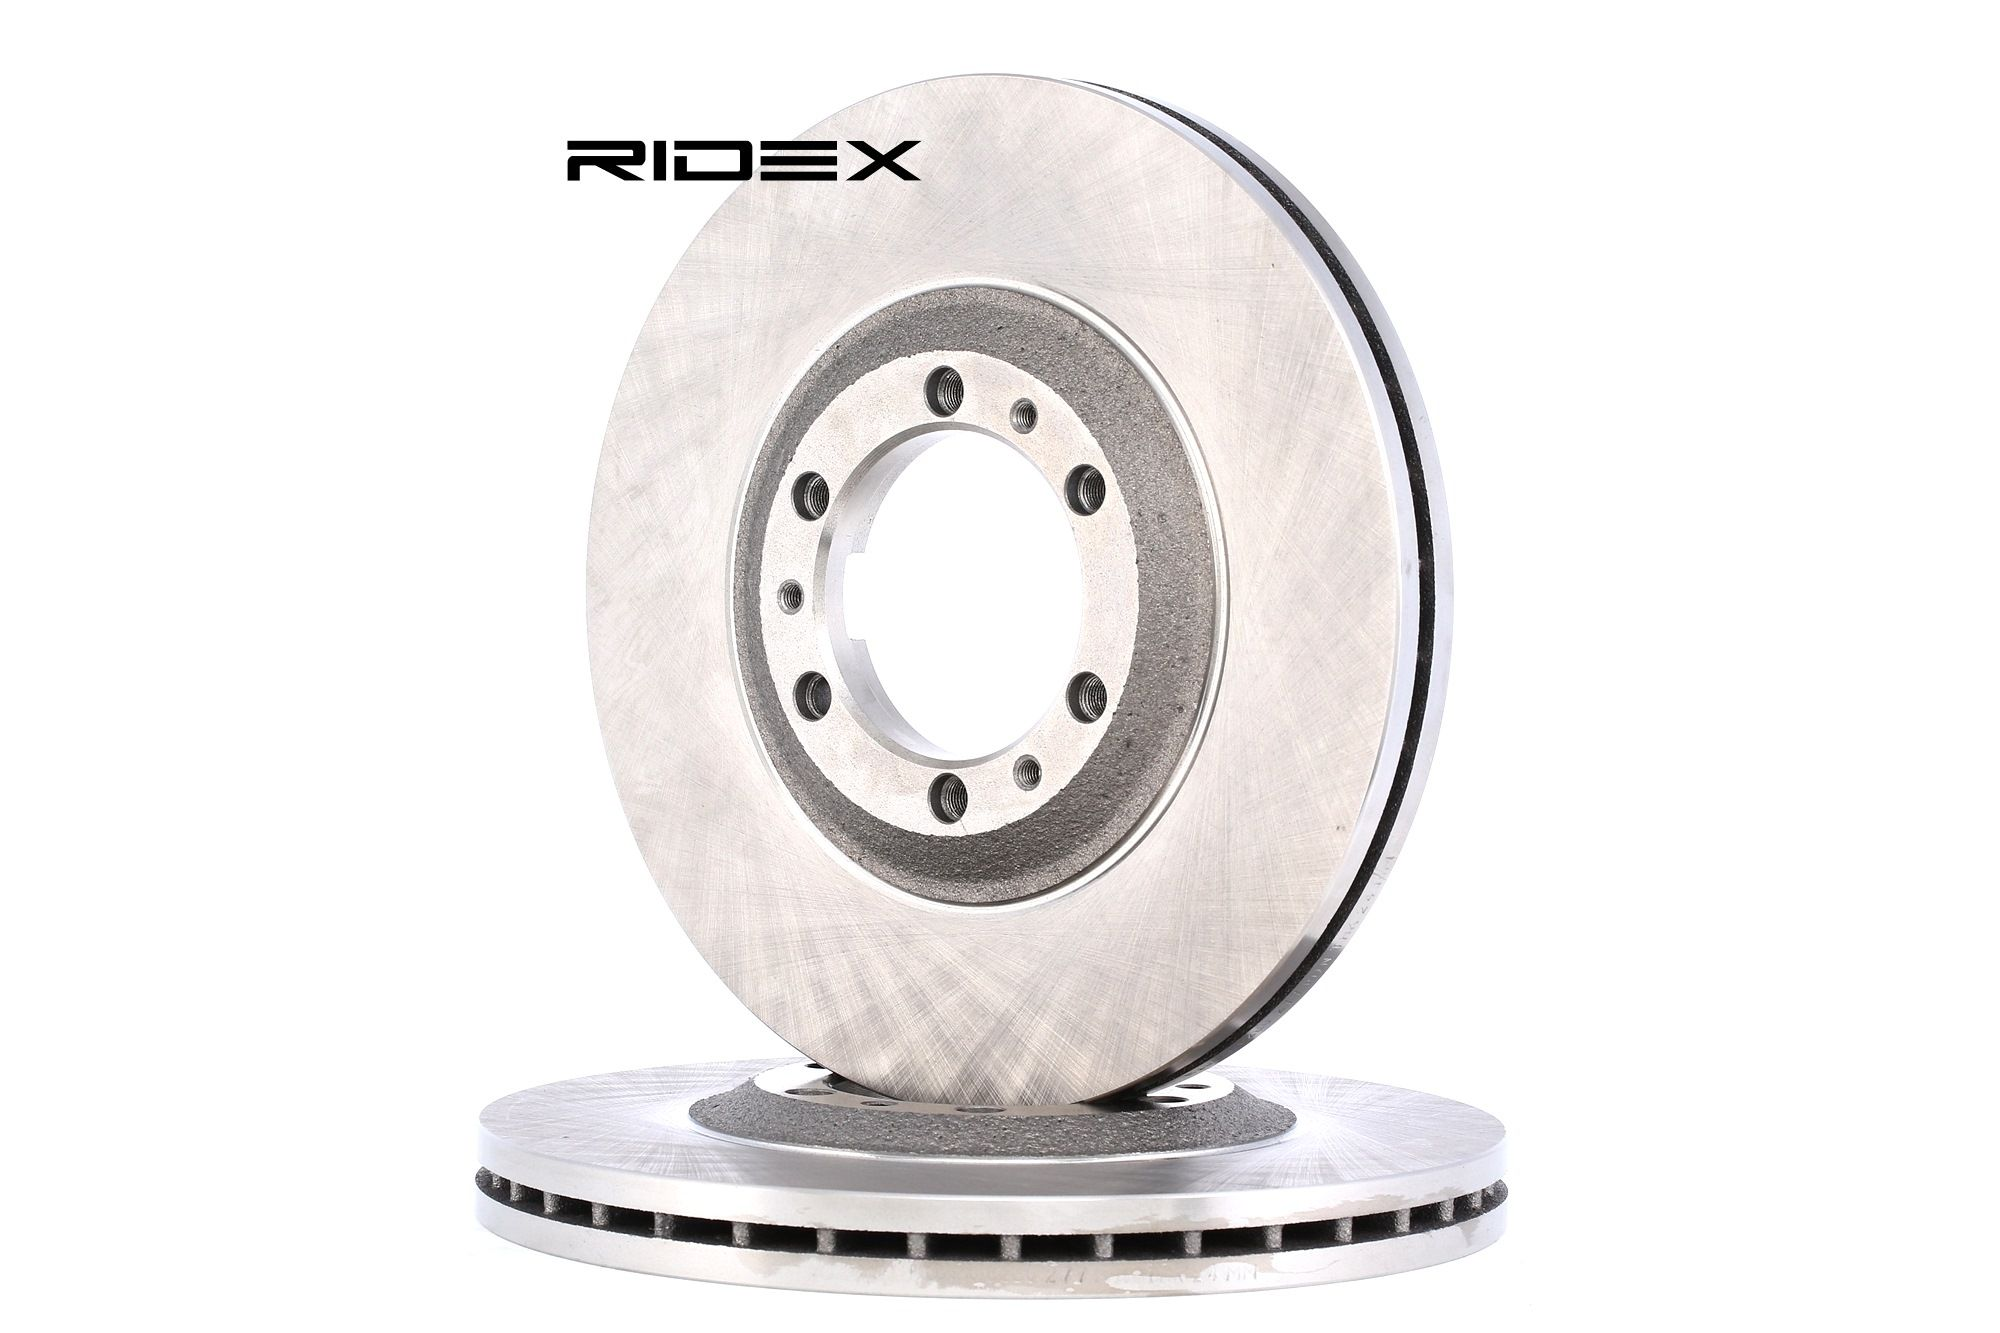 RIDEX 82B0277 Disco de freno Espesor disco freno: 26mm, Núm. orificios: 6, Ø: 280mm